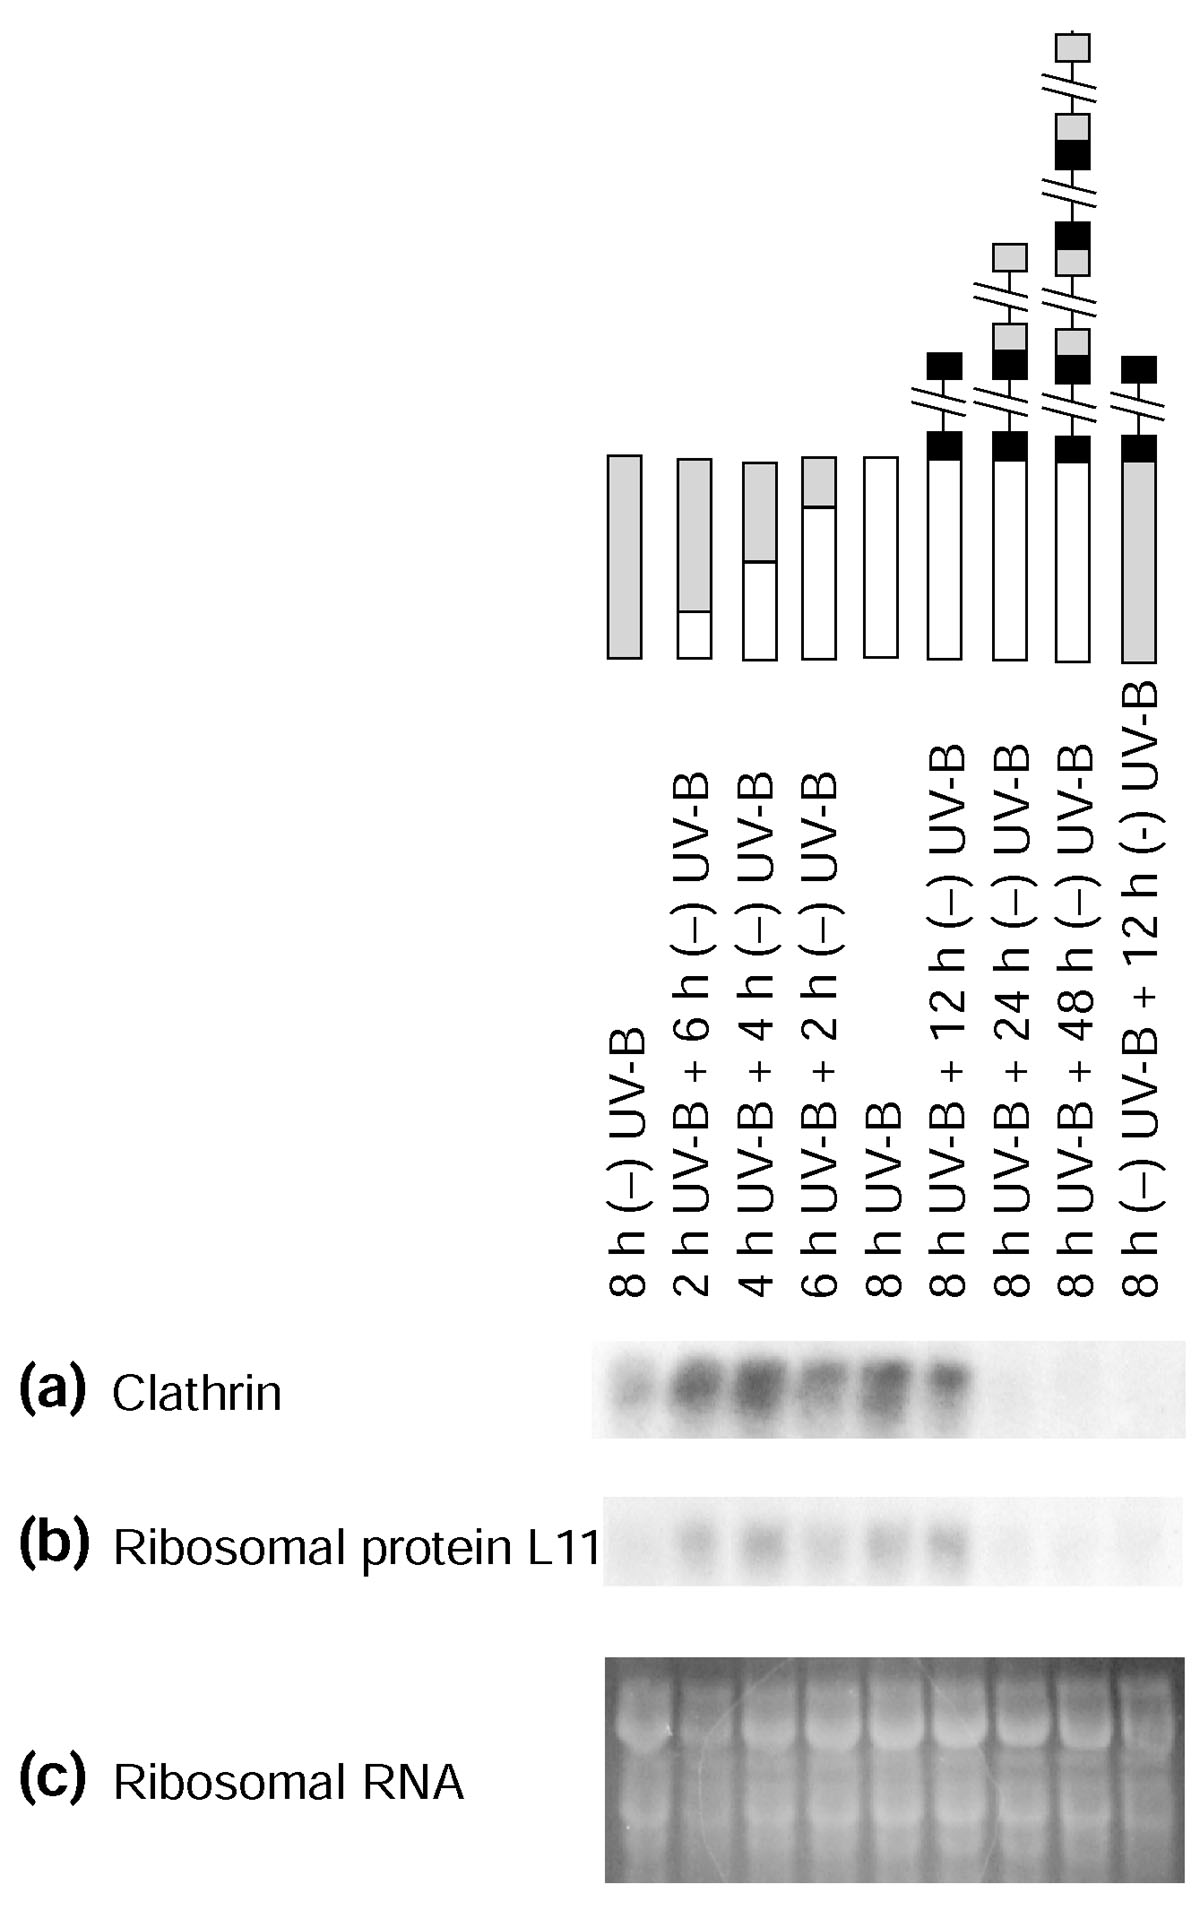 https://static-content.springer.com/image/art%3A10.1186%2Fgb-2004-5-3-r16/MediaObjects/13059_2003_Article_820_Fig9_HTML.jpg